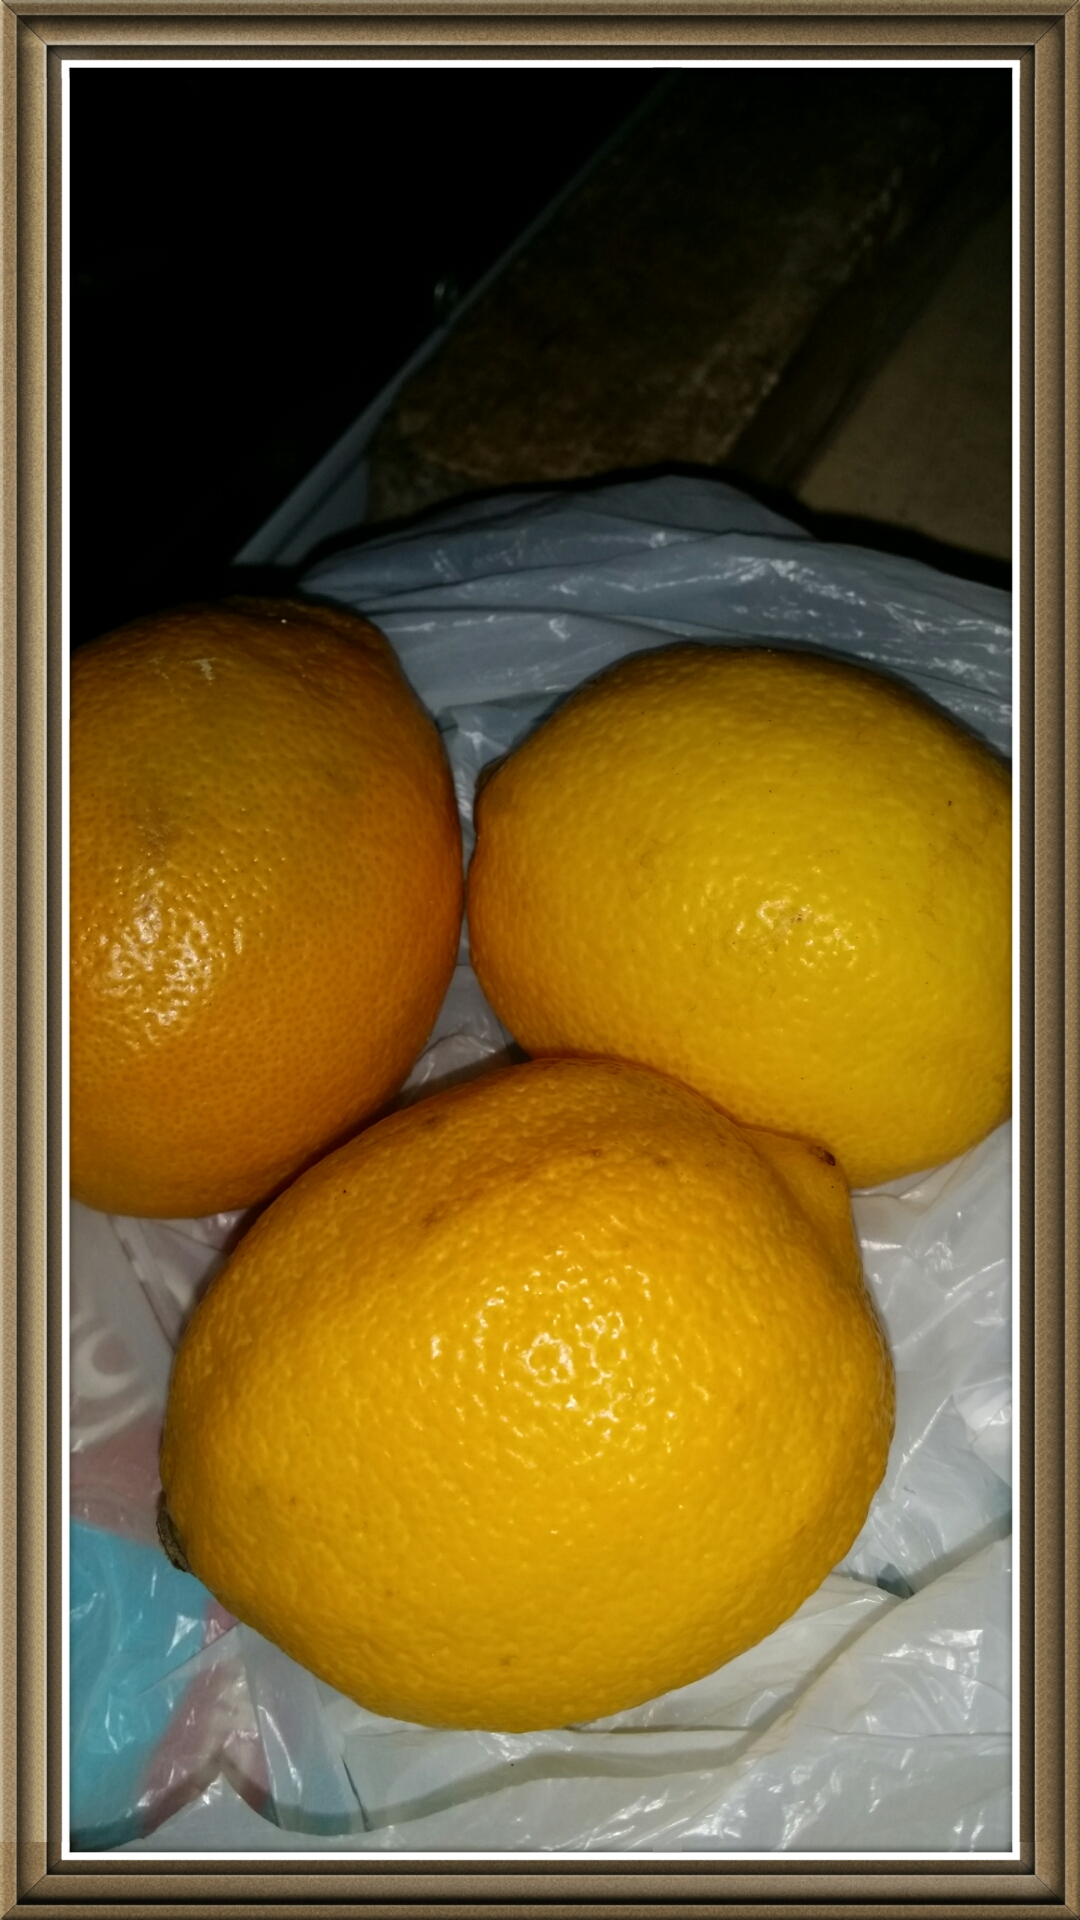 the 3 lemon fruits that my sister bought.